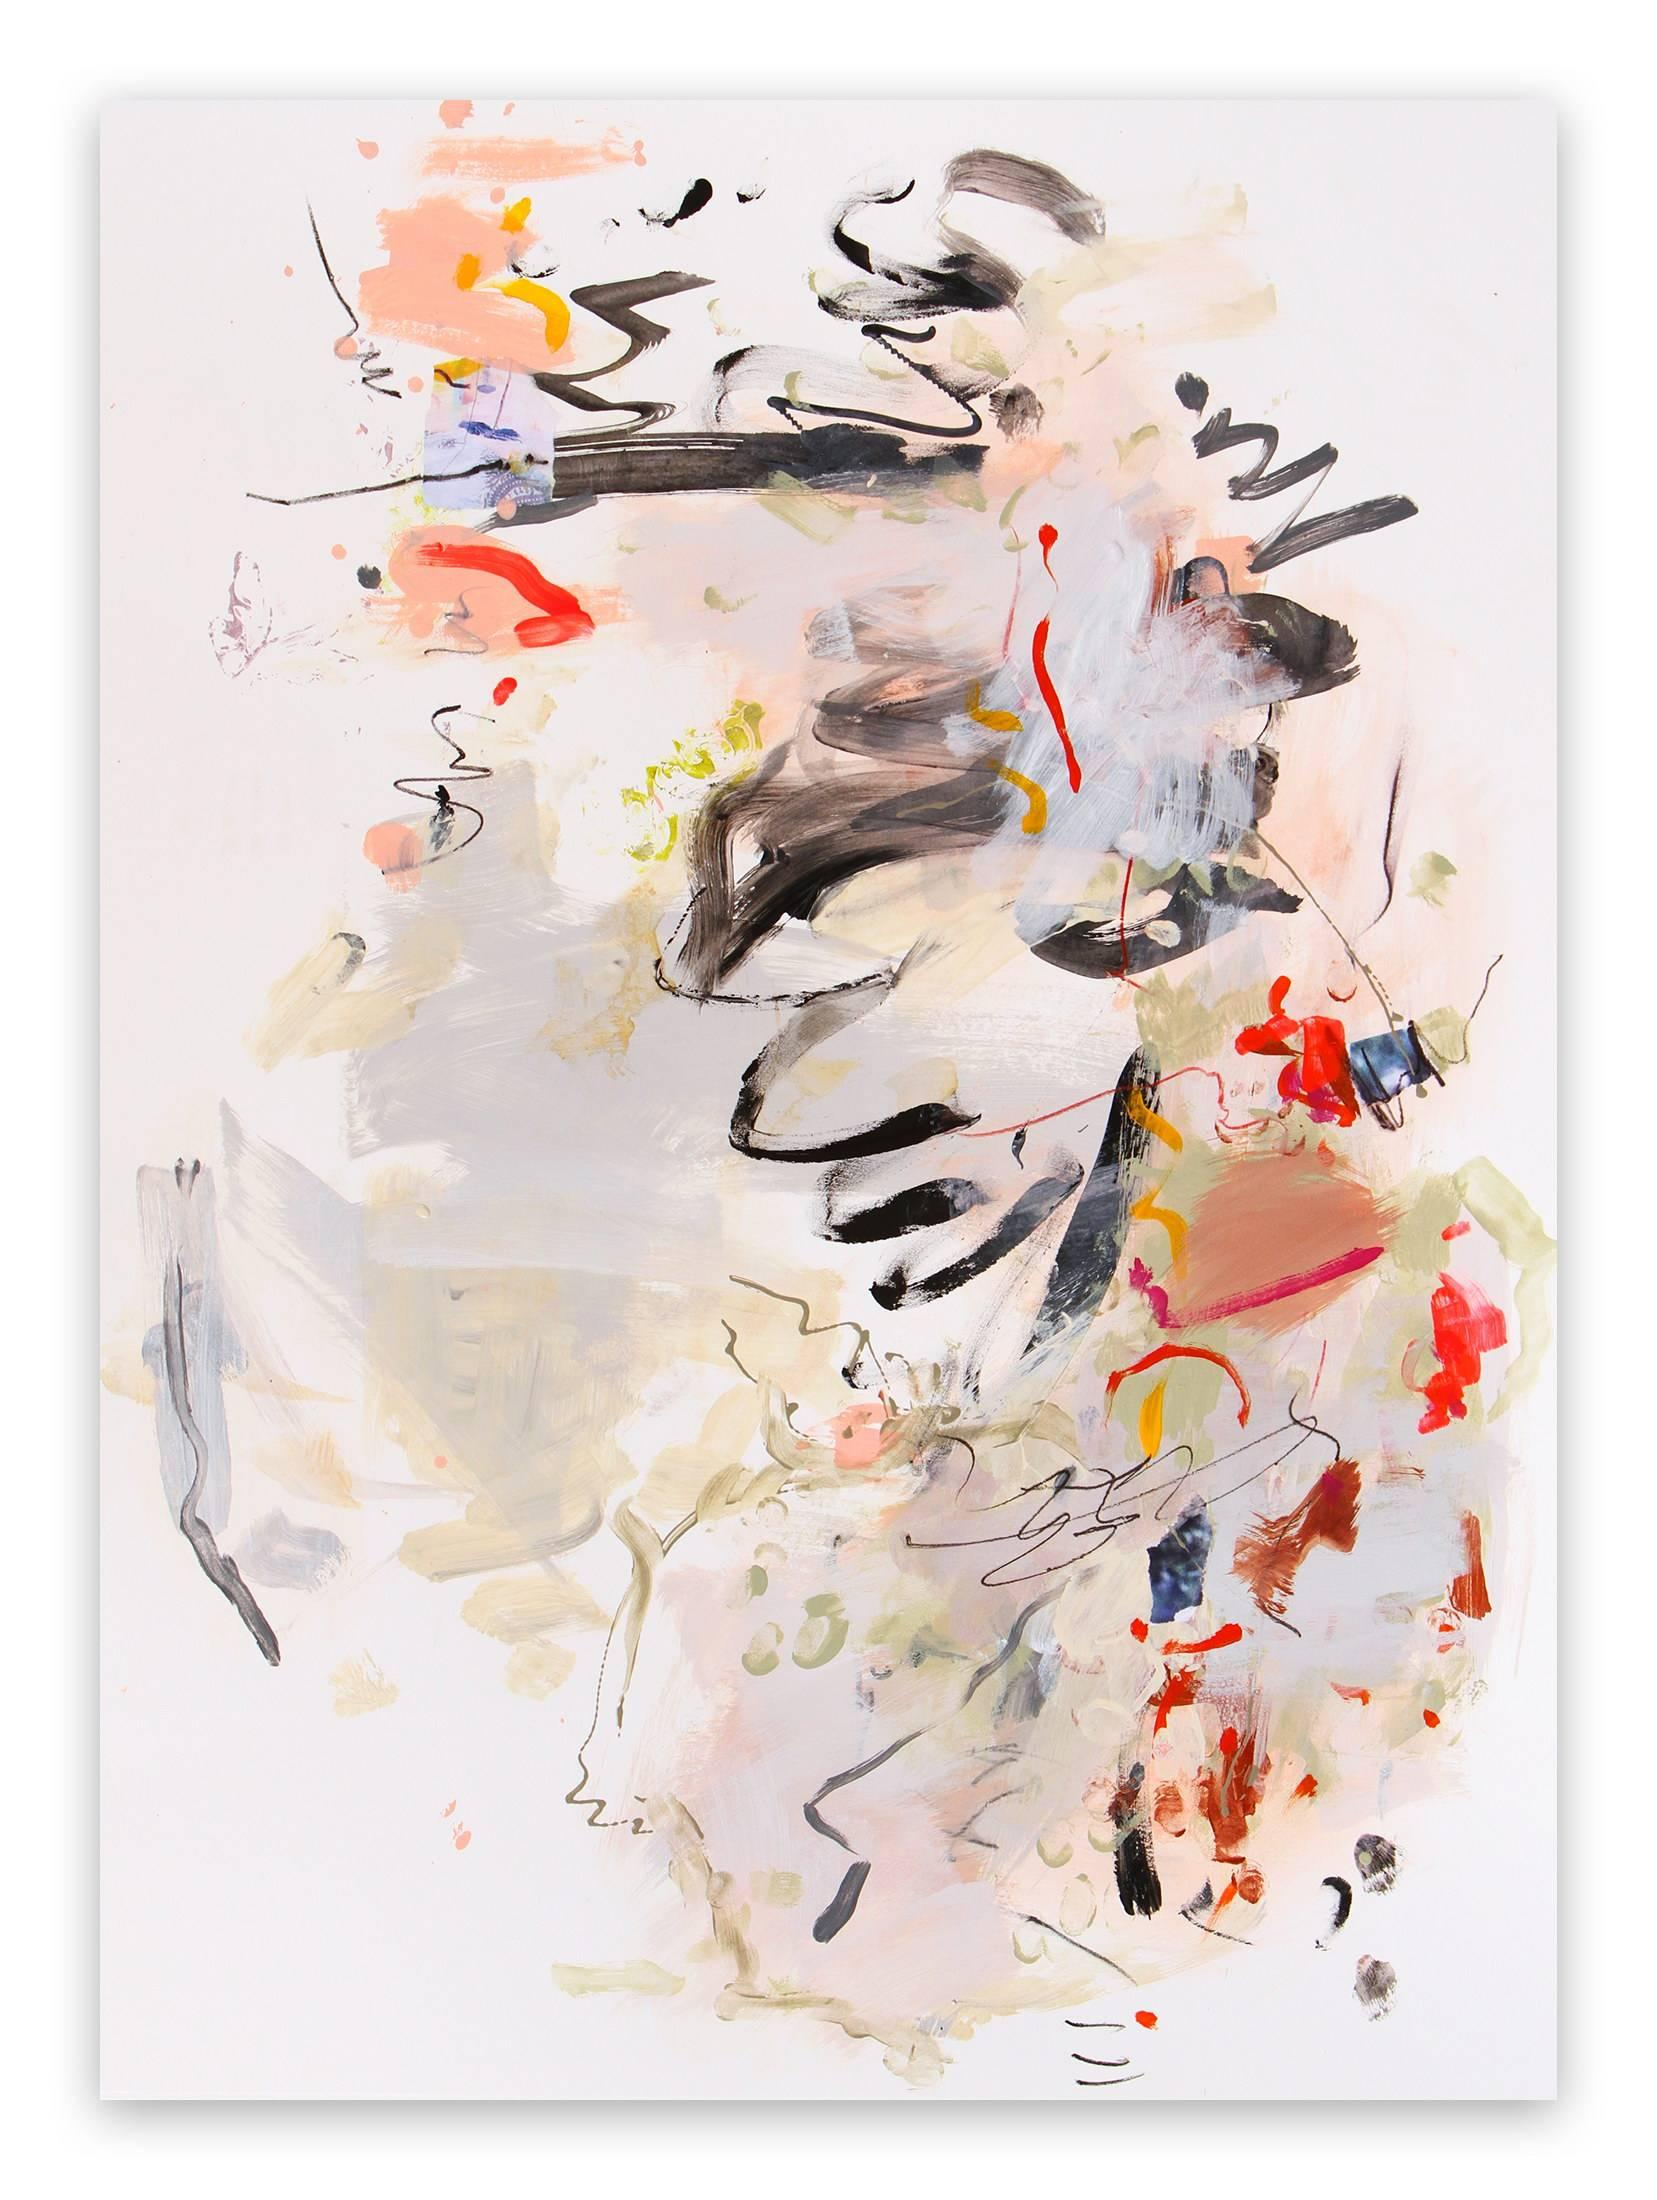 Notation (Abstract Expressionism painting)